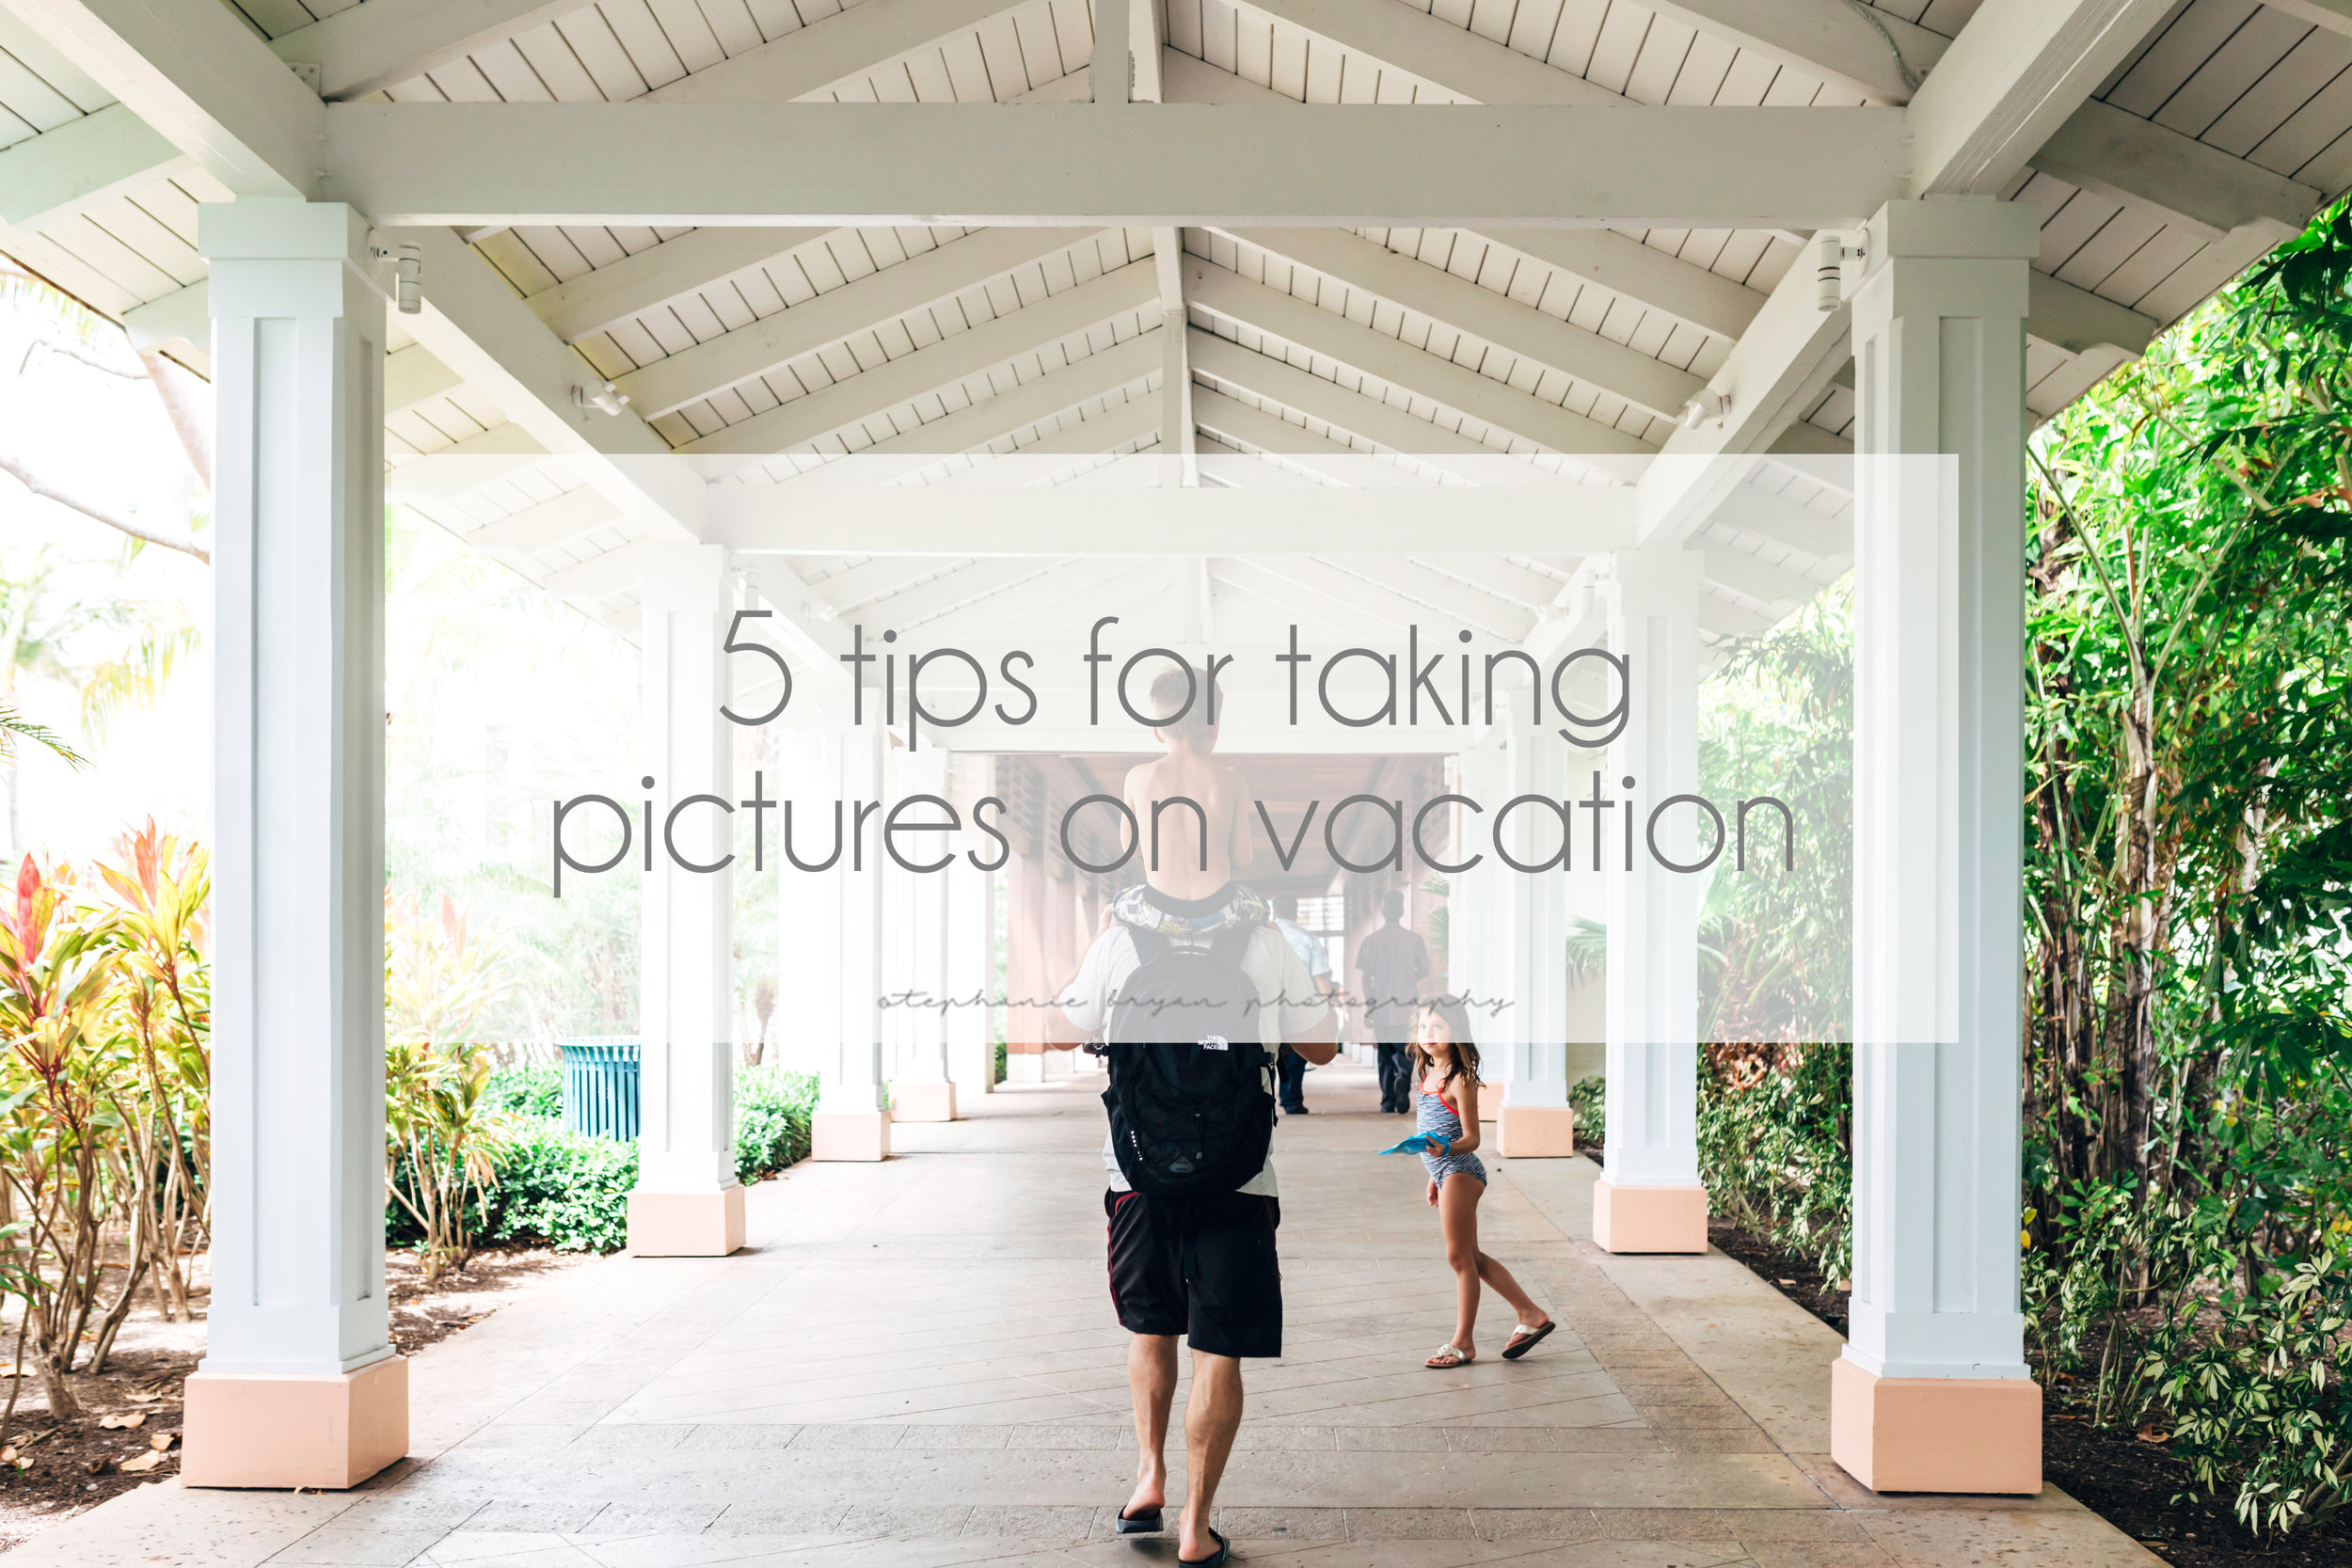 Stephanie Bryan Photography - 5 tips for taking pictures on vacation